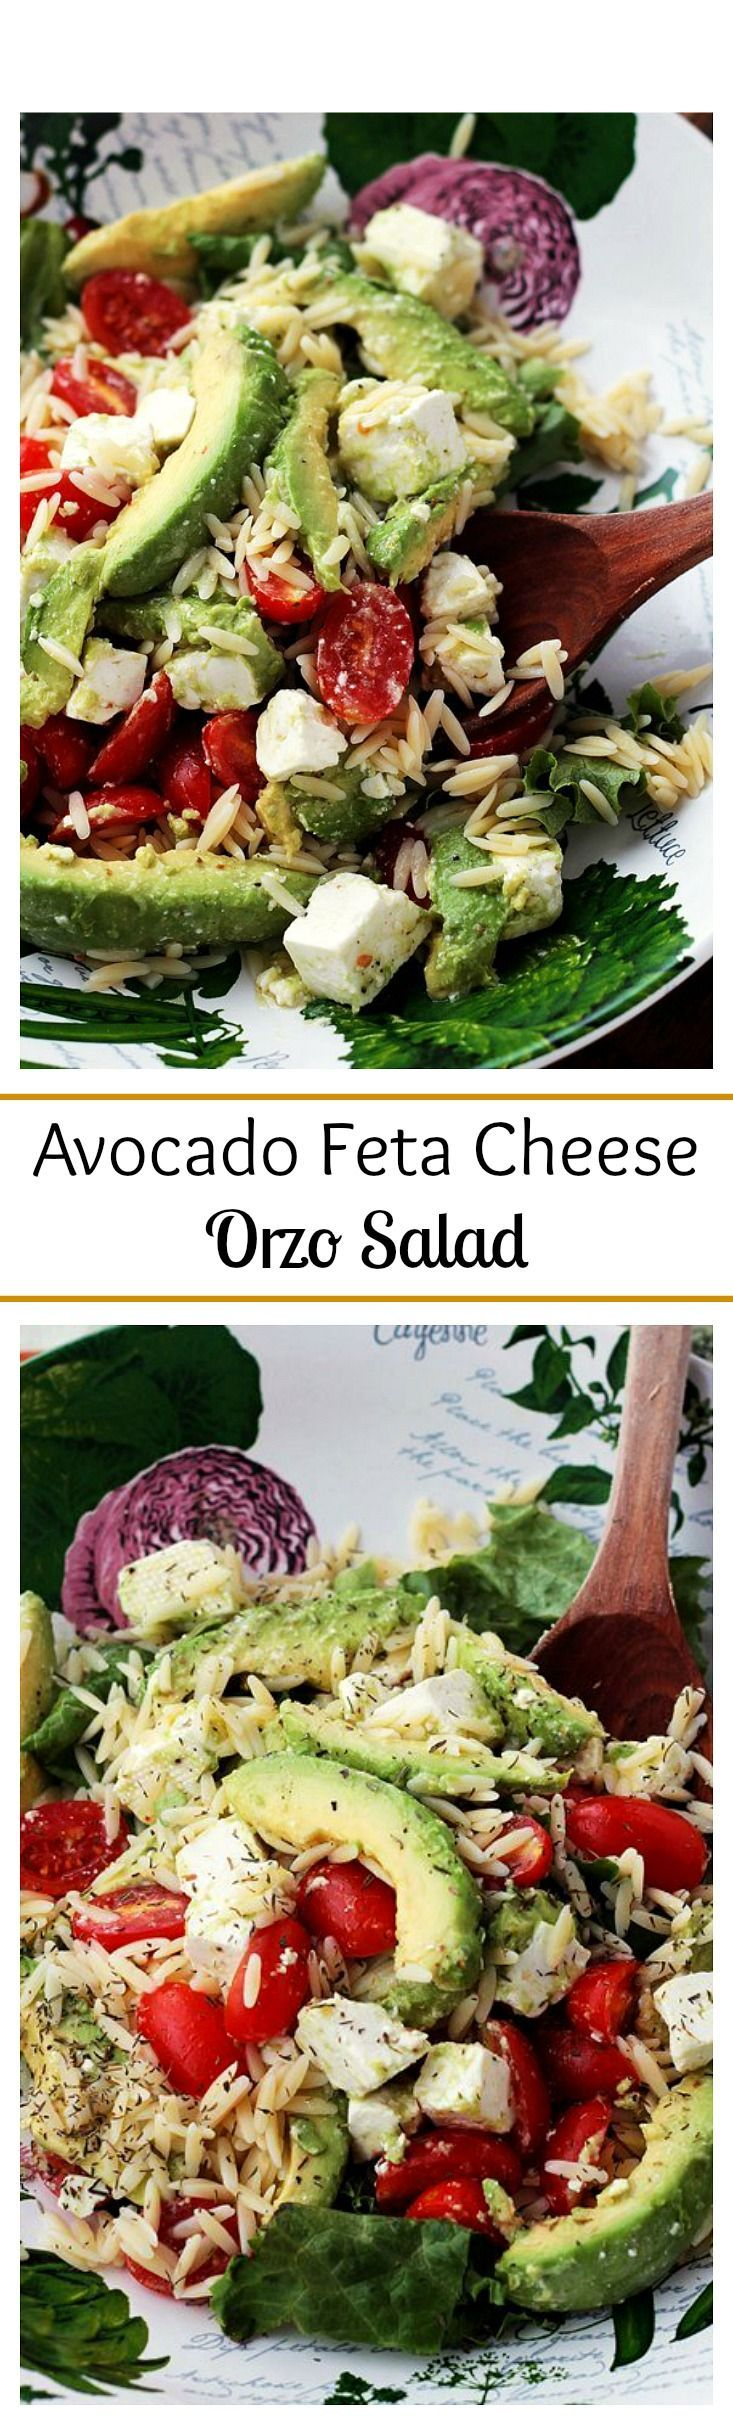 Bright, simple, and delicious appetizer salad with Avocados, Feta Cheese and Orzo.